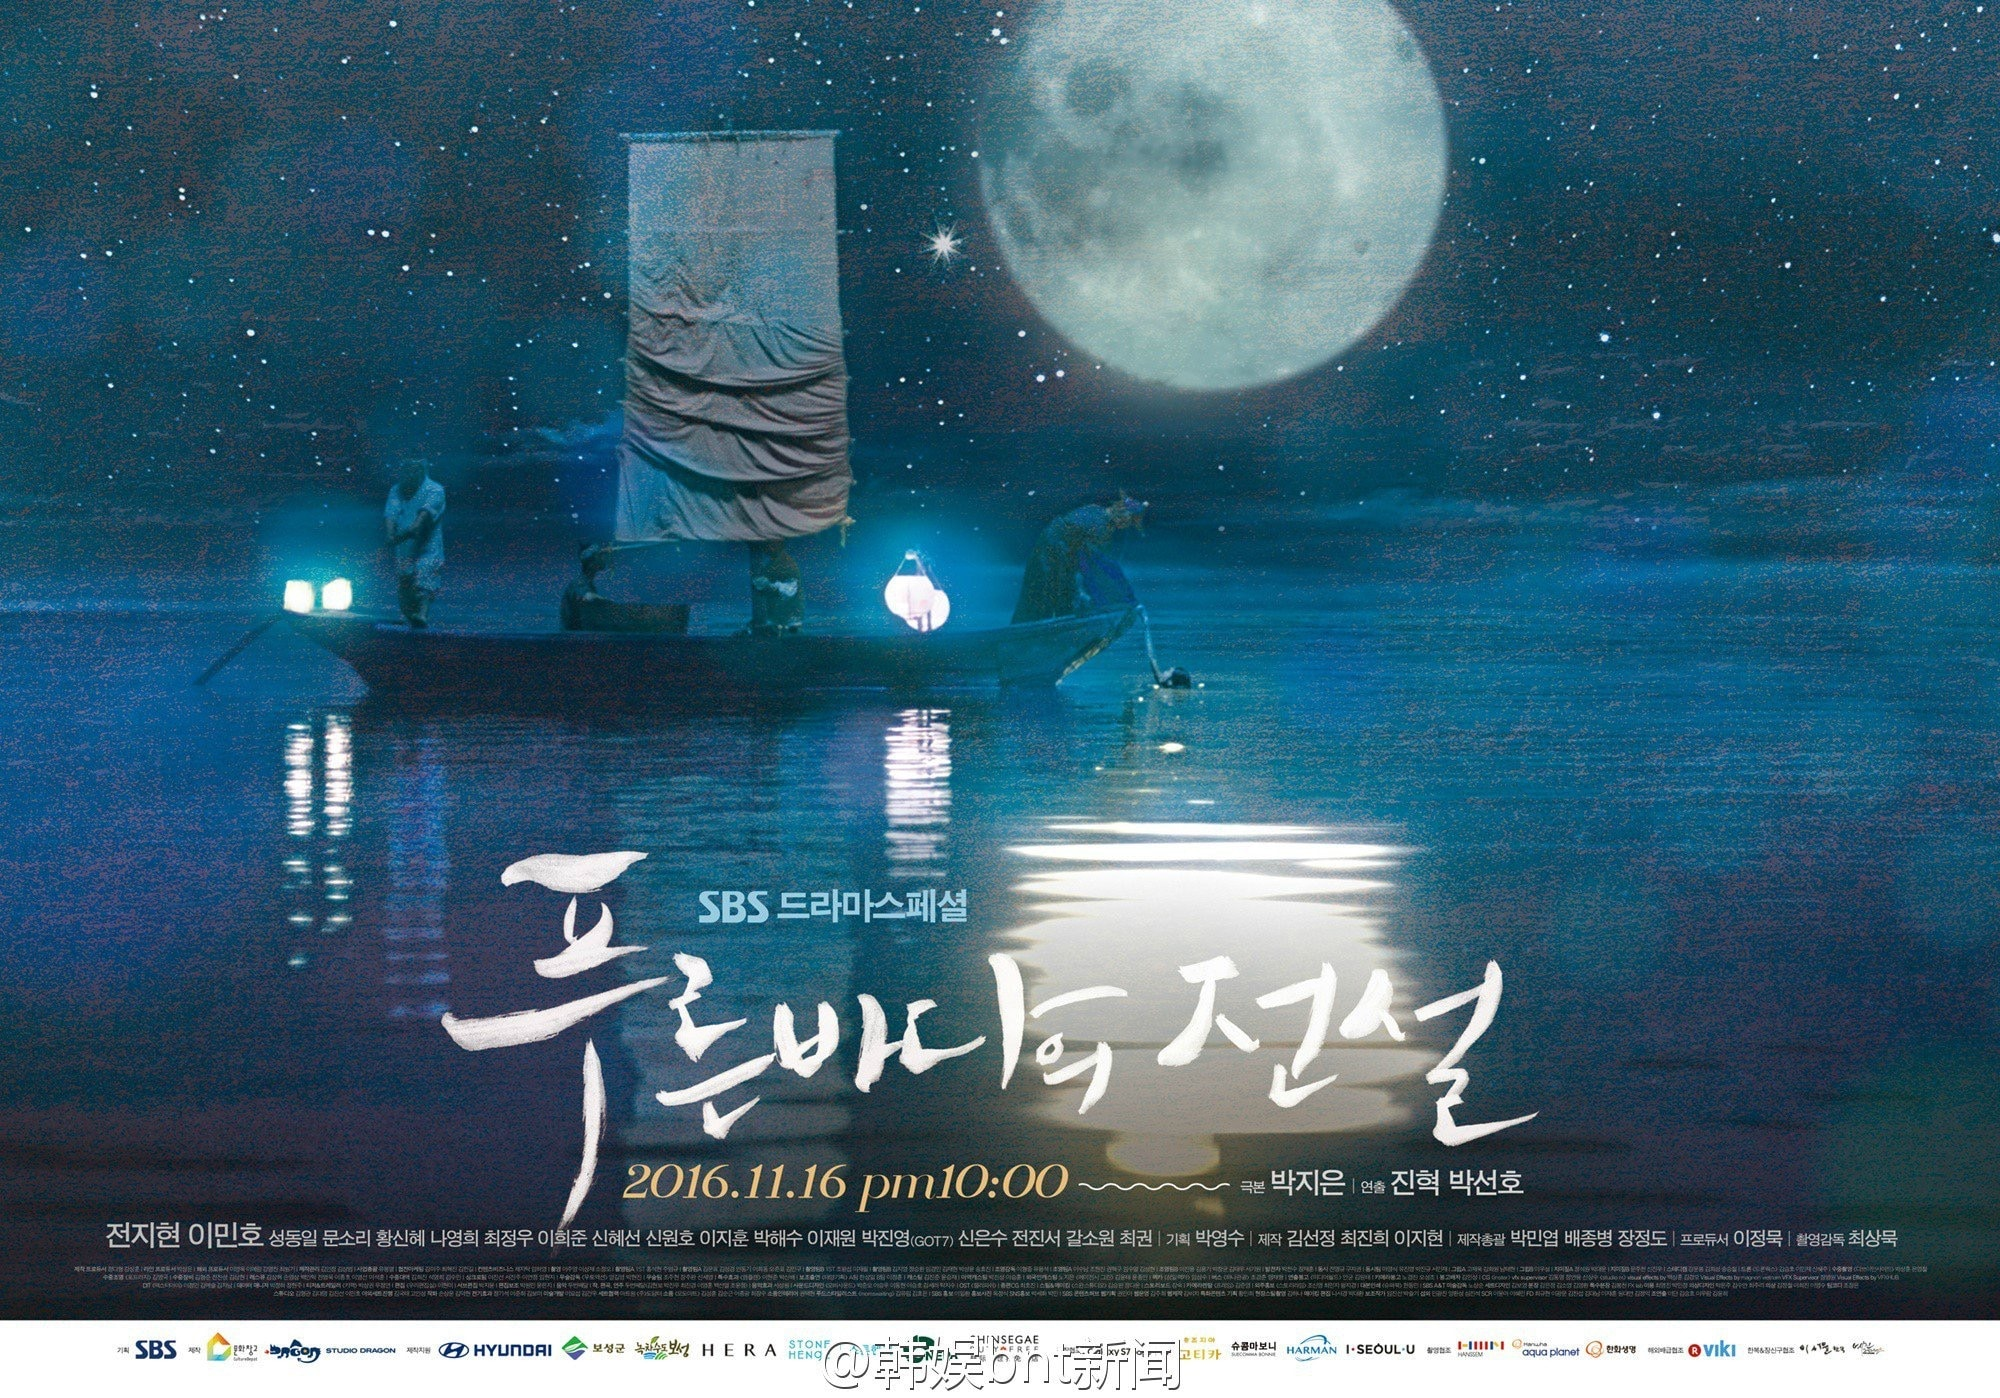 http://www.koreandrama.org/wp-content/uploads/2016/10/The-Legend-of-the-Blue-Sea-Poster-2.jpg